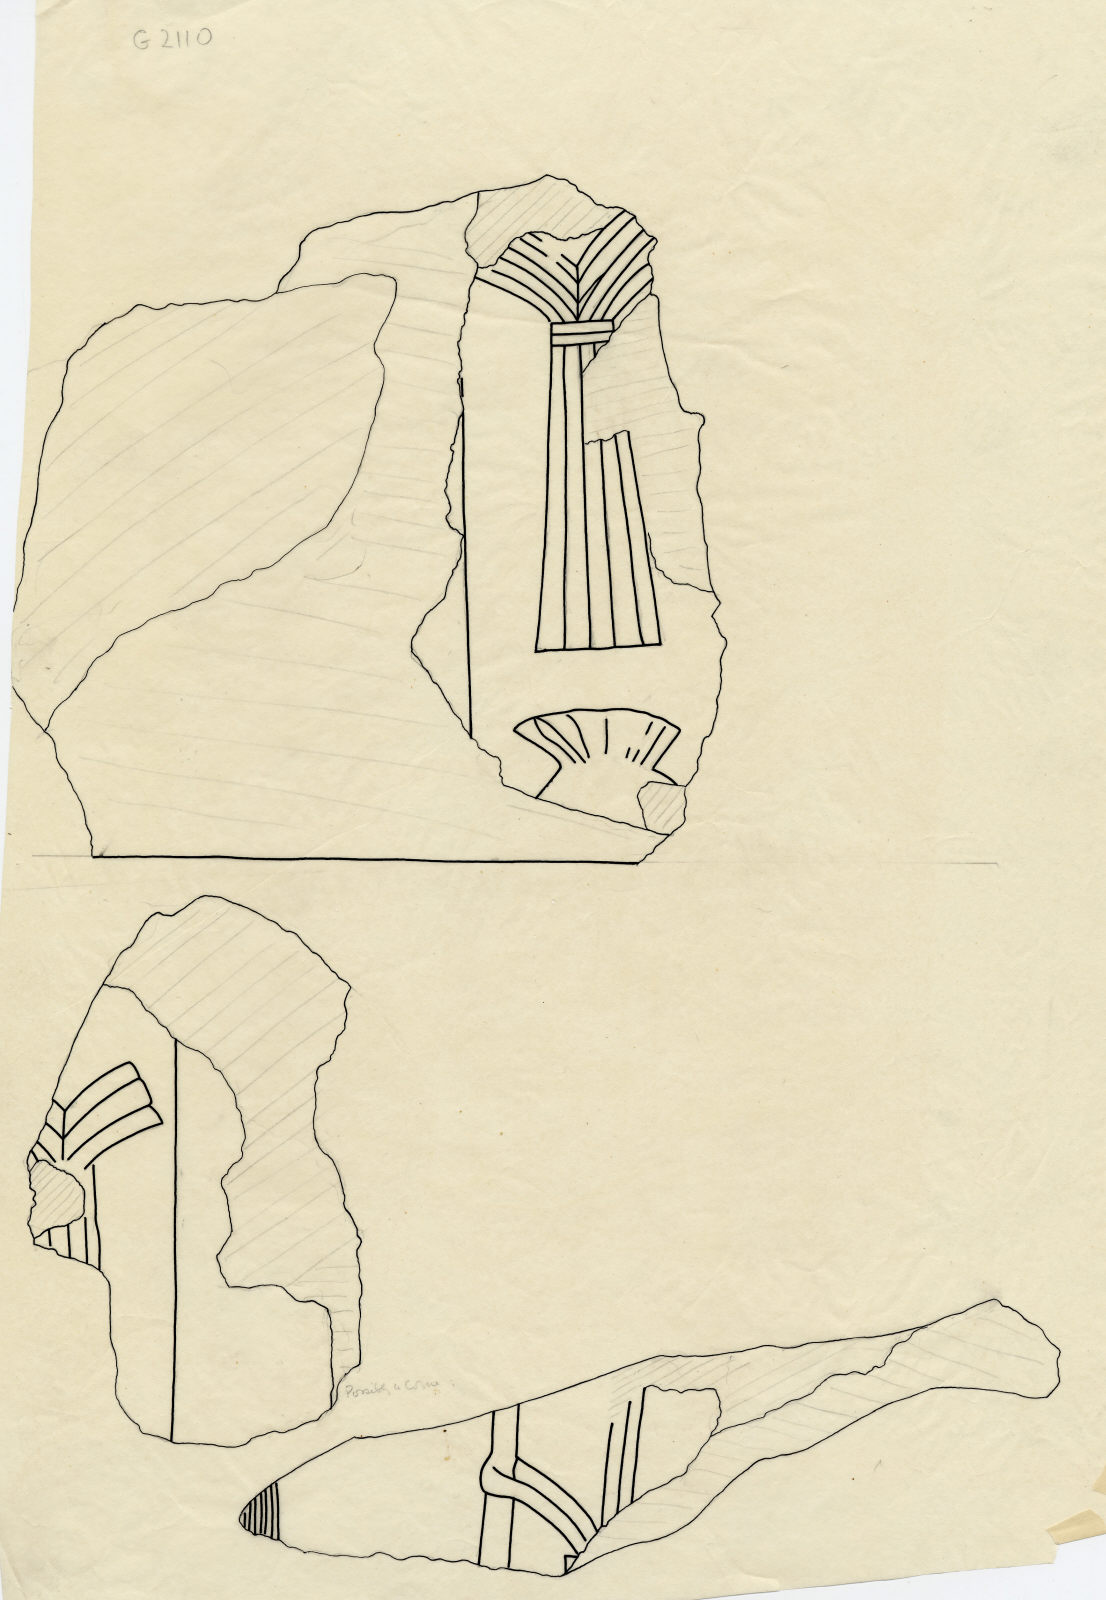 Drawings: G 2110: relief fragments (unregistered) from W wall